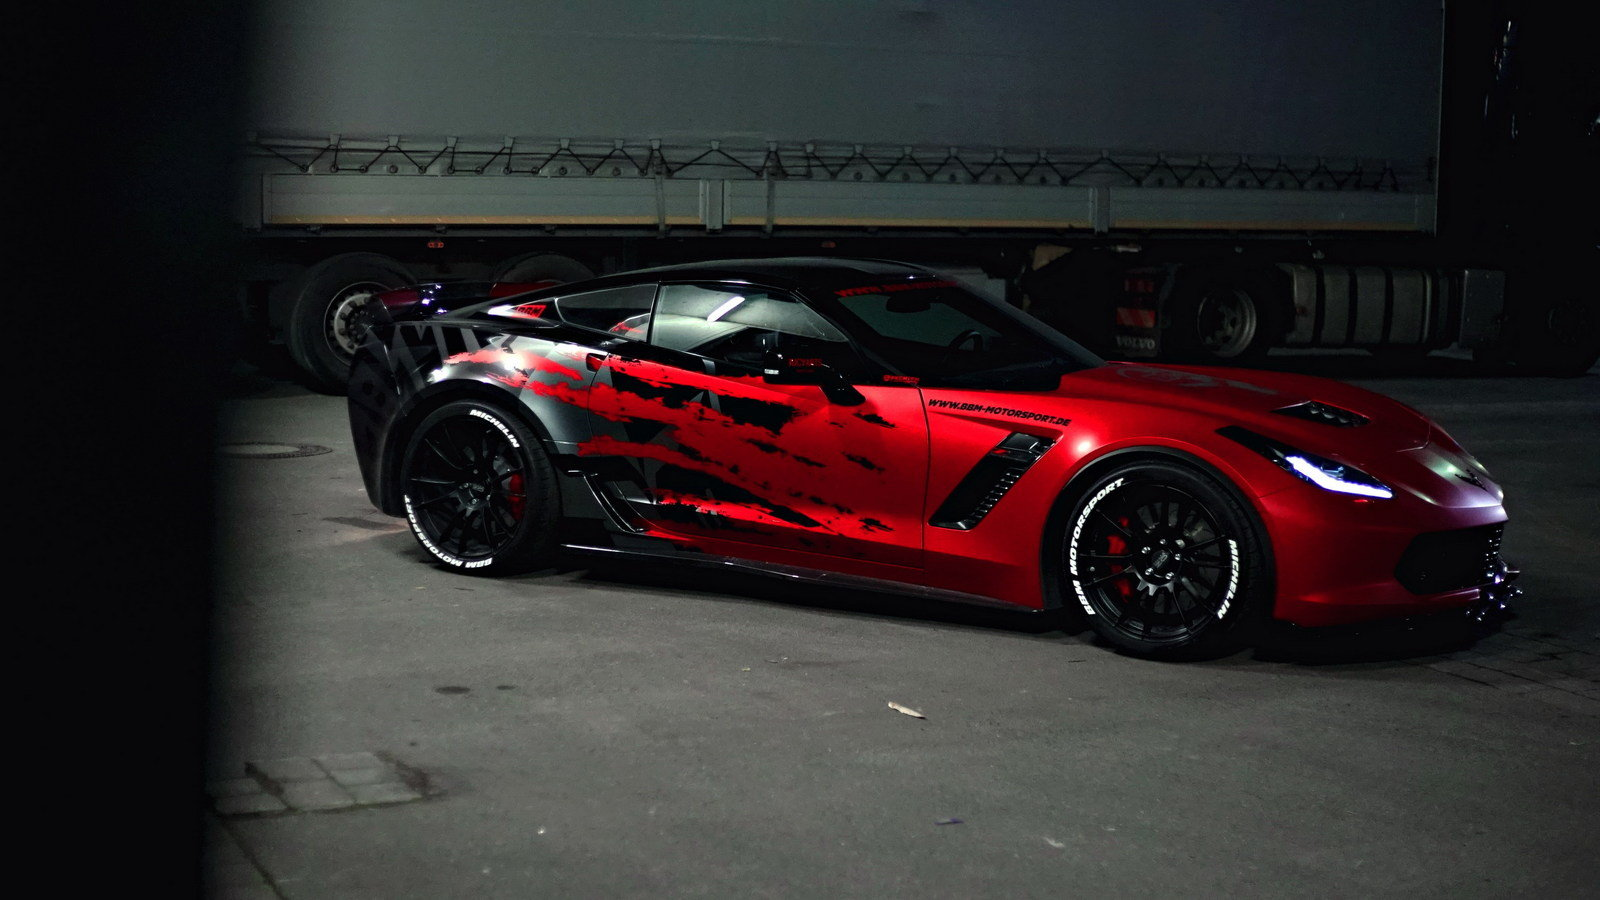 2016 chevrolet corvette z06 by bbm motorsport picture 671921 car review top speed. Black Bedroom Furniture Sets. Home Design Ideas